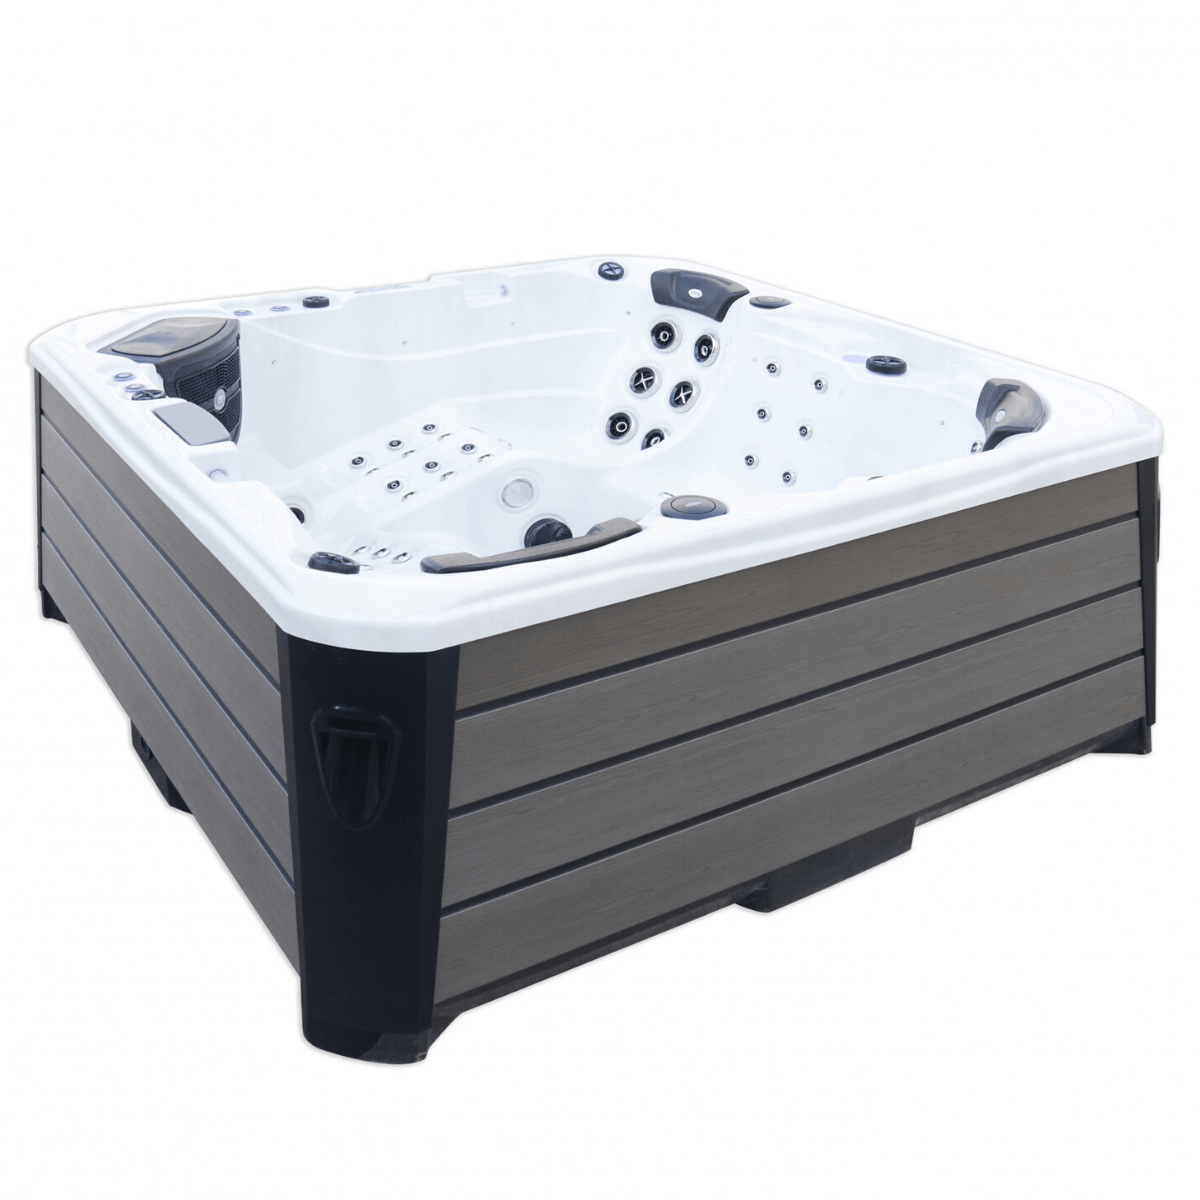 Renewal Victoria Just Hot Tubs